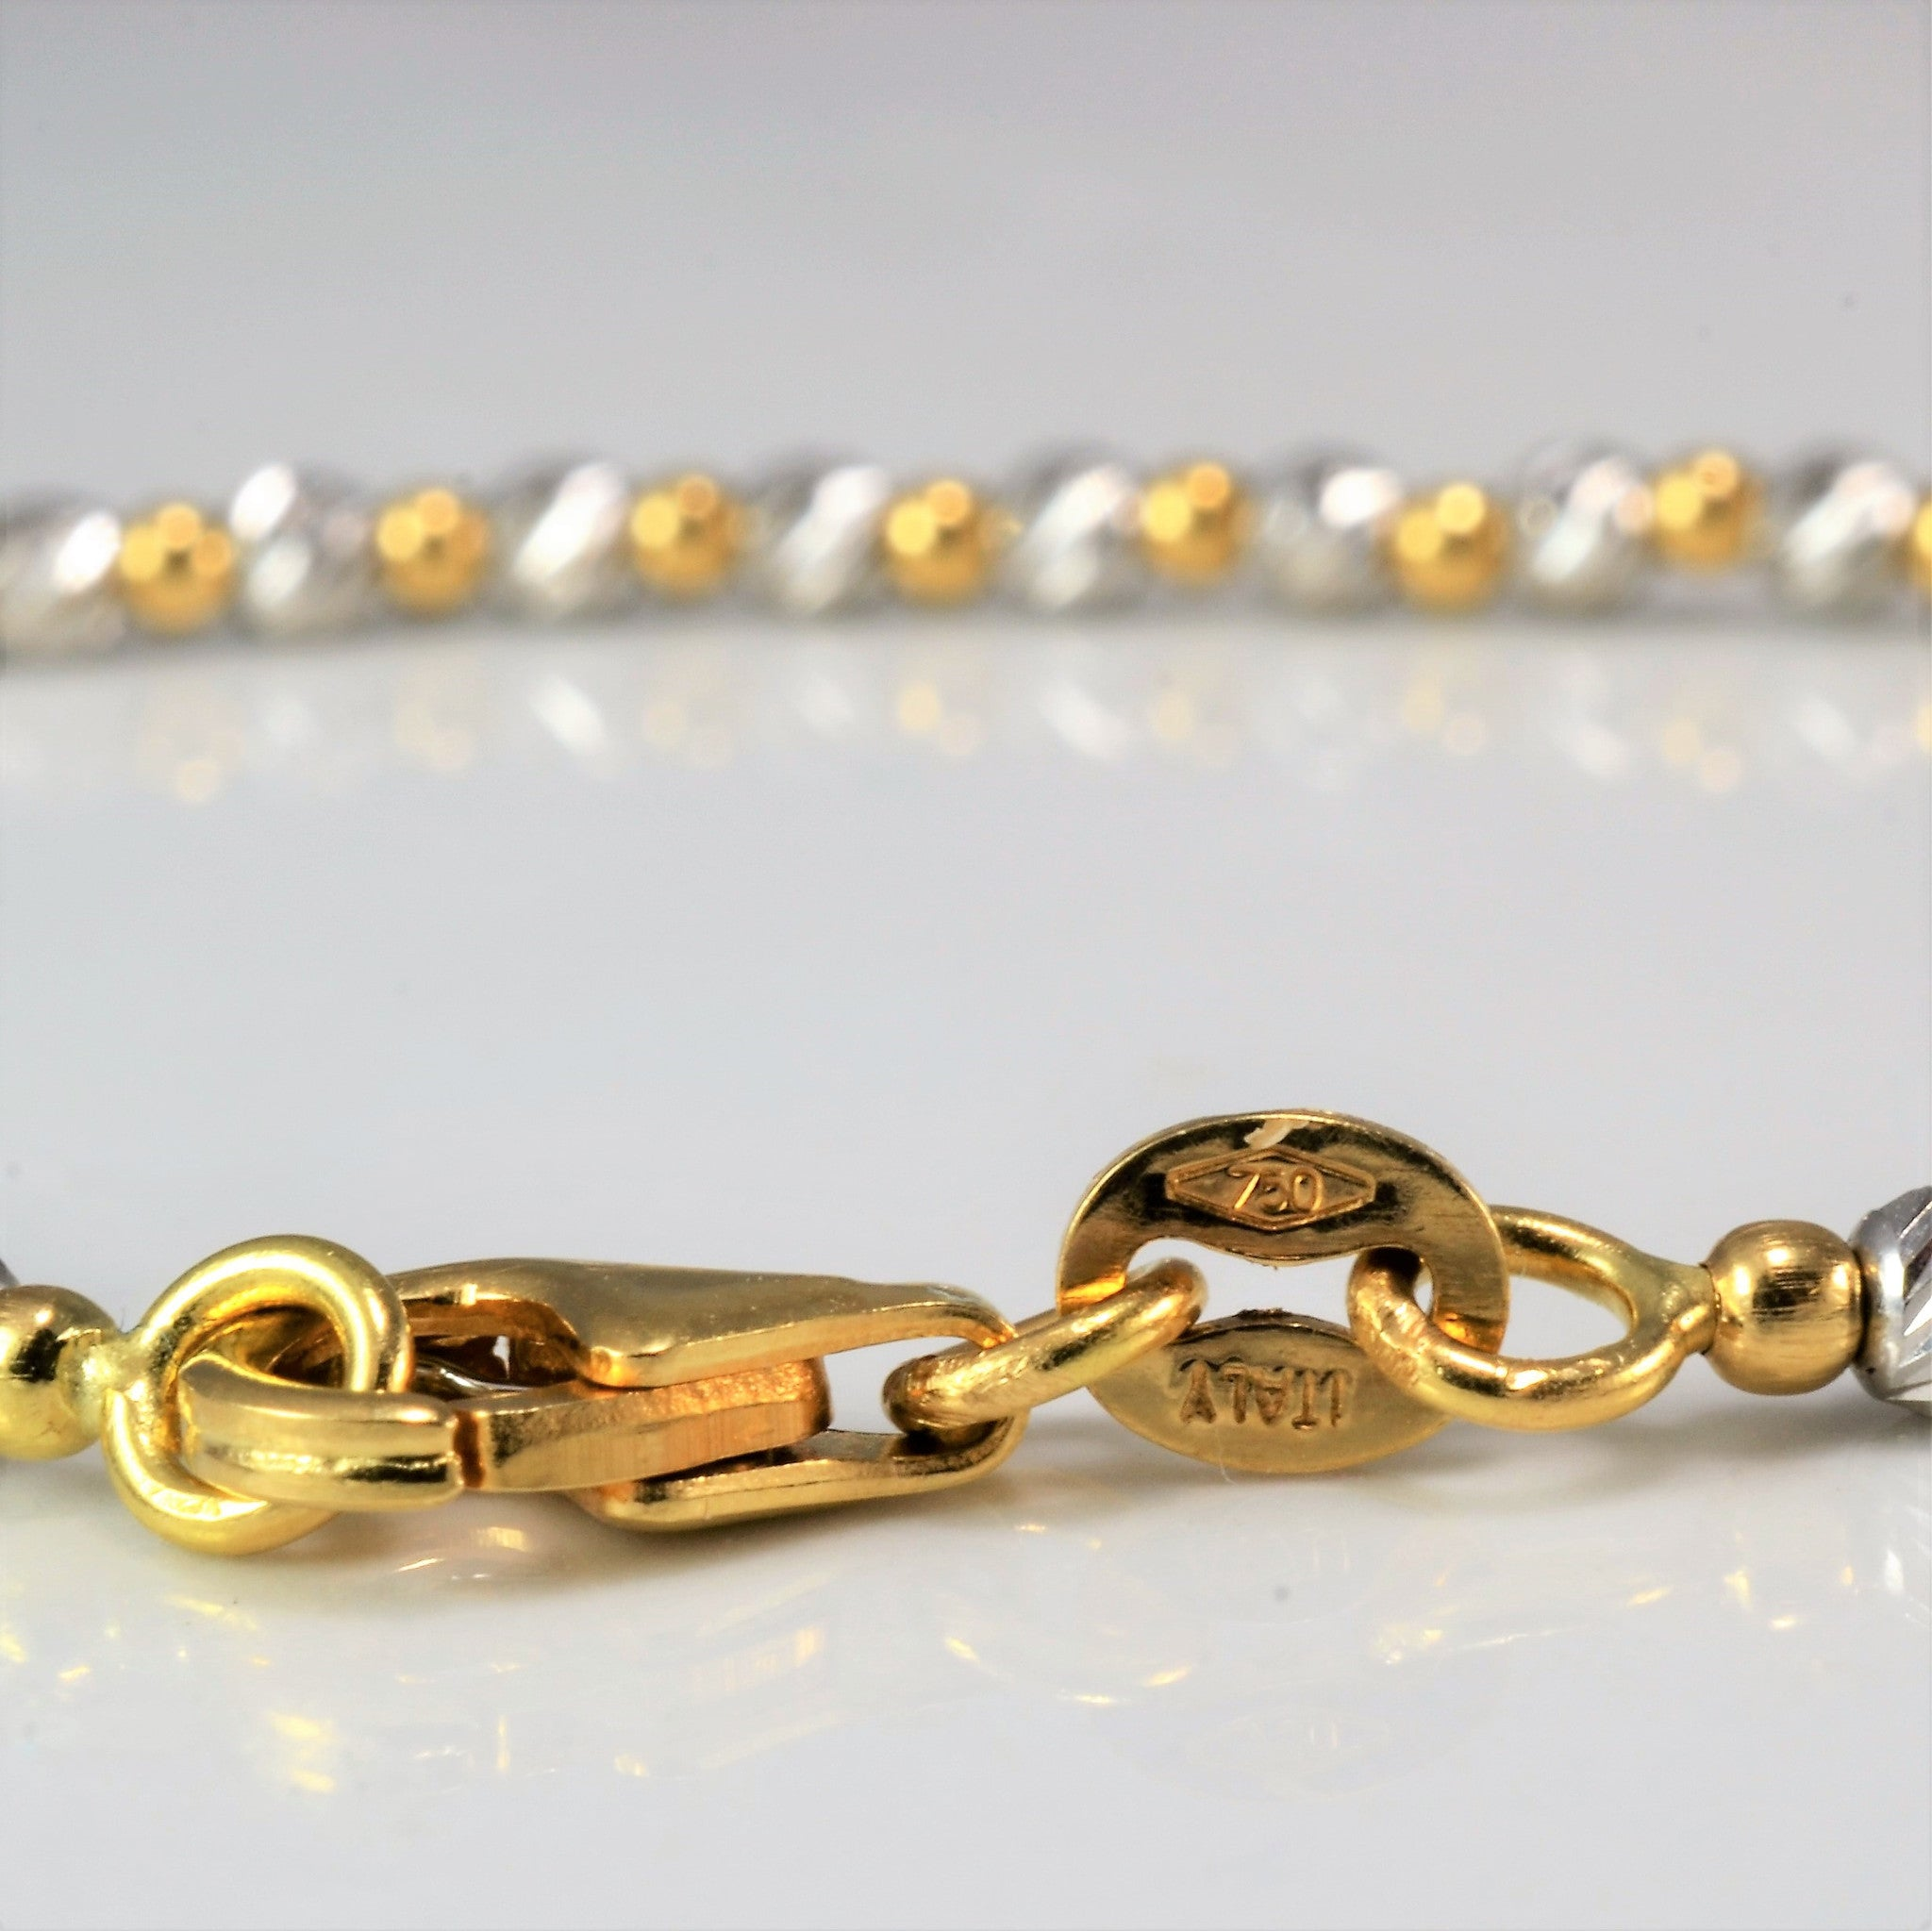 Two Tone Gold Beaded Bracelet | 7"